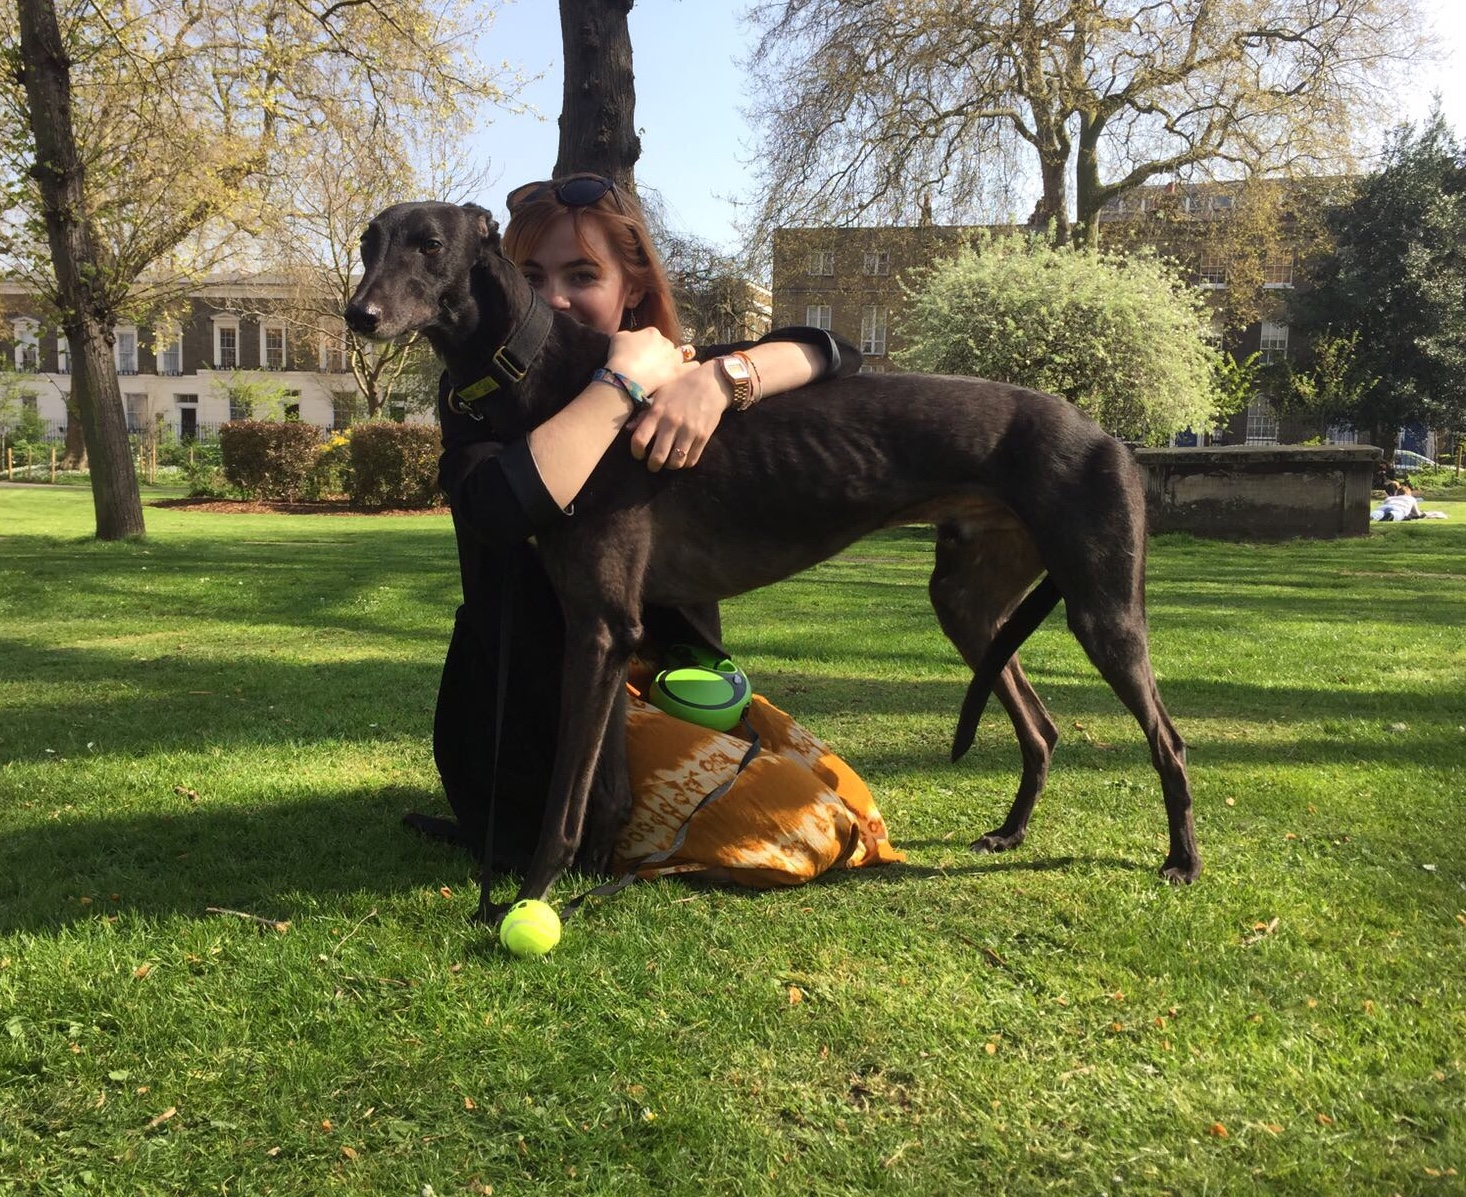 Myself & Parker, an ex racing, rescued Greyhound.    I started walking Parker when we were both new to London and it made me so happy to see him settle into his new life and come out of his shell.